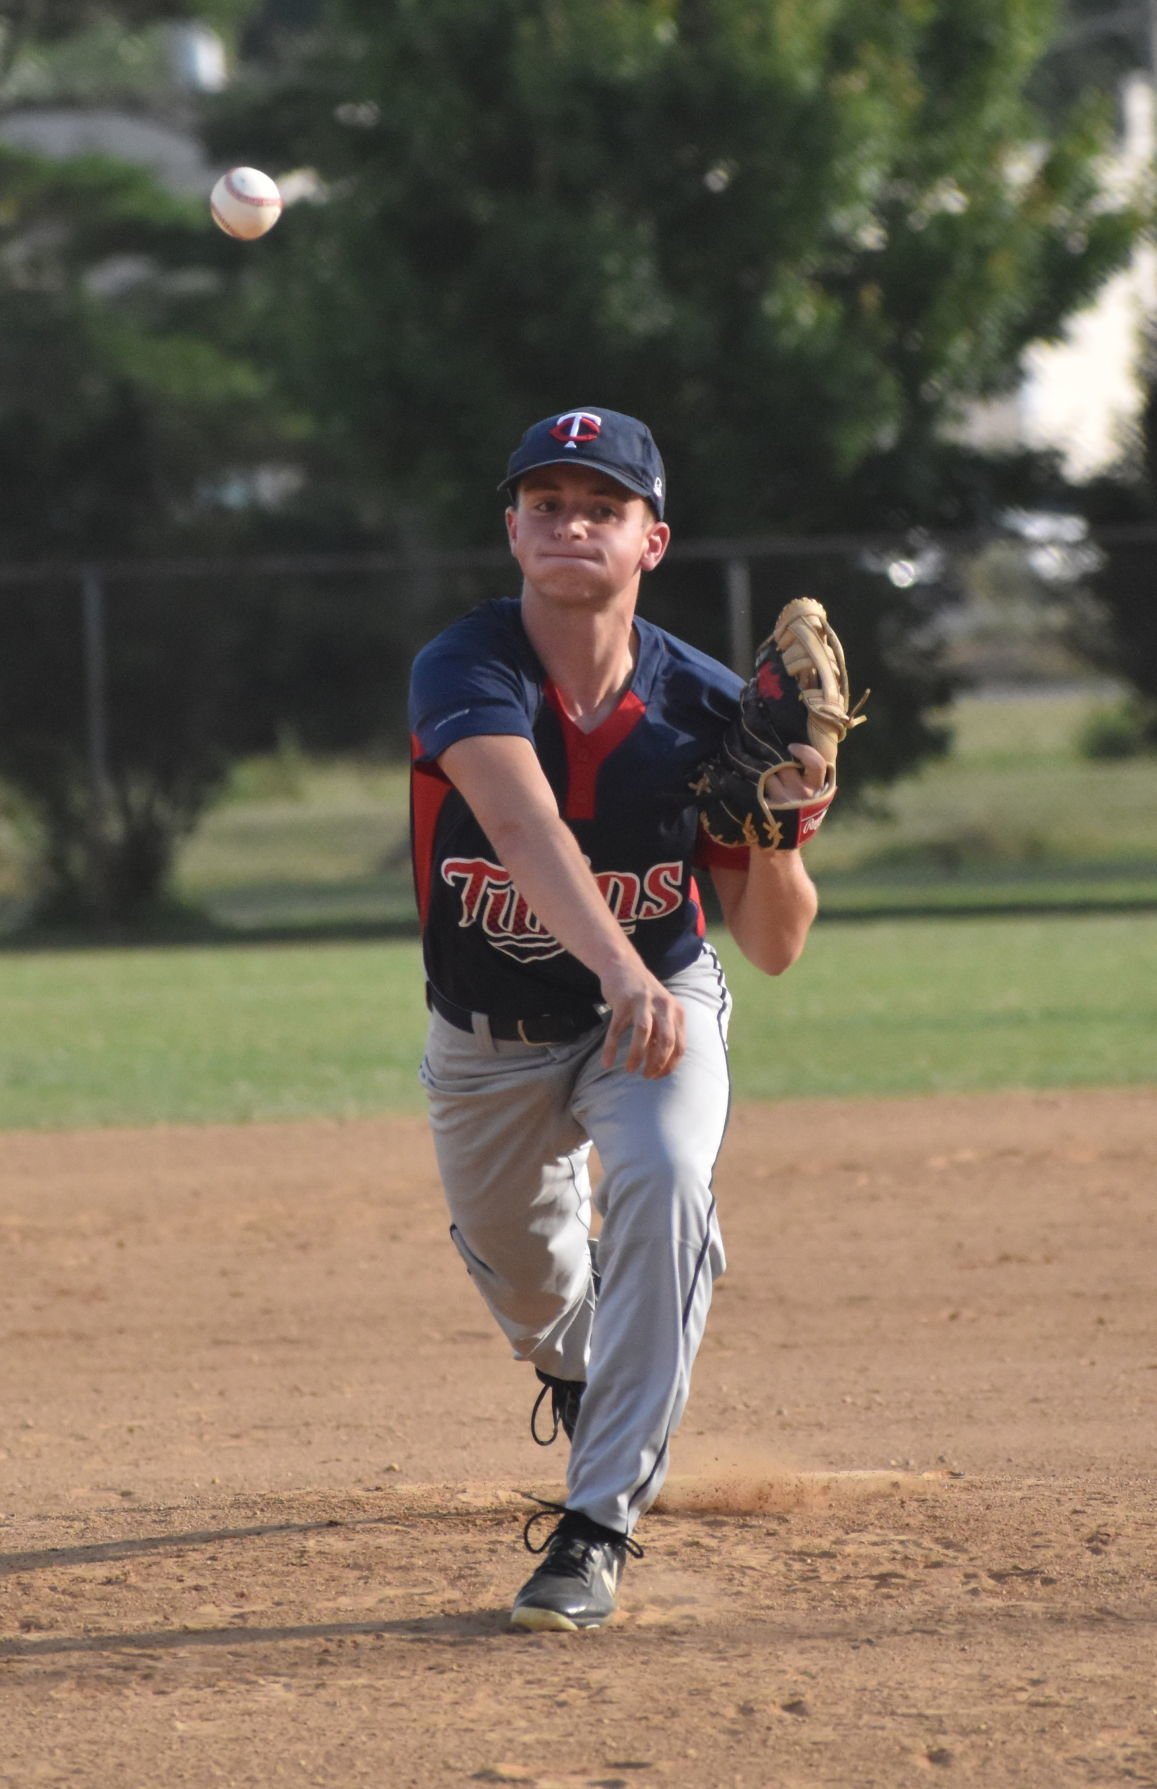 2019 District 6 Senior League Baseball Playoffs: Caroline vs. Tri-City, June 25, 2019